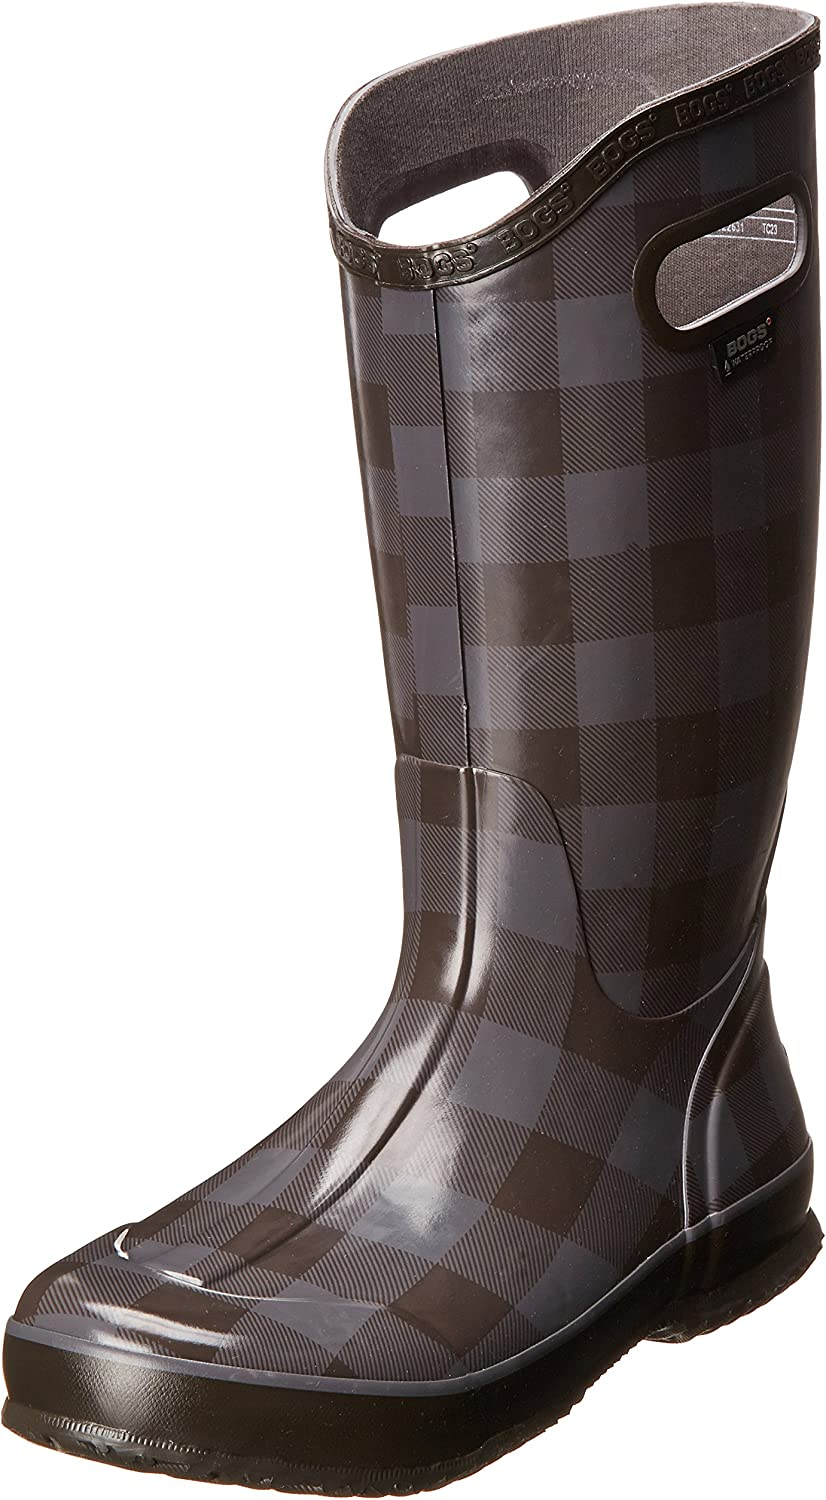 Bogs Women's Buffalo Plaid Rainboot Waterproof Boot